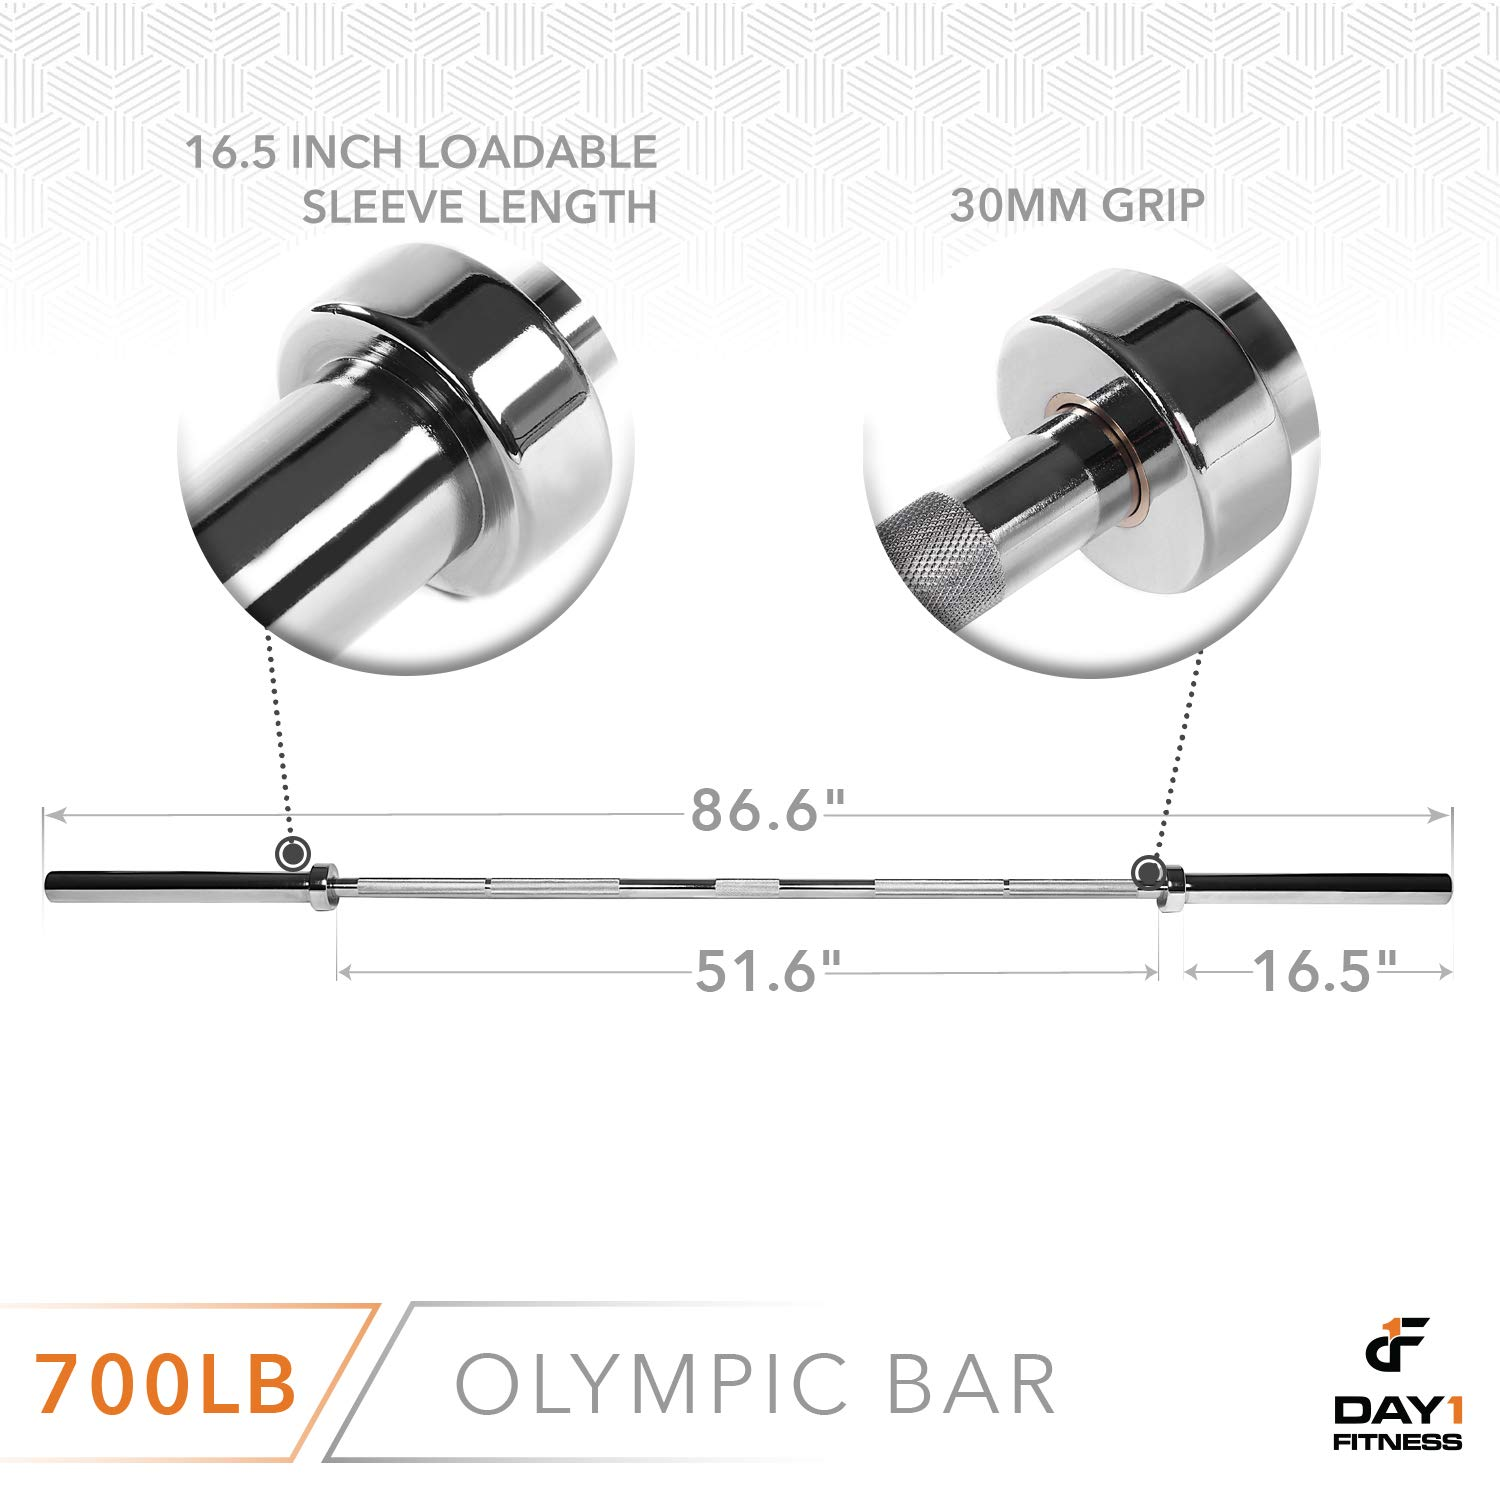 Olympic Barbell 2 , 700 OR 1200 POUND CAPACITY OPTION, 7 by D1F for Weightlifting, Bench Press, Bodybuilding, Powerlifting – Durable Crossfit Bar – Heavy-Duty Steel Bars and Barbells, Holds 2 Plates